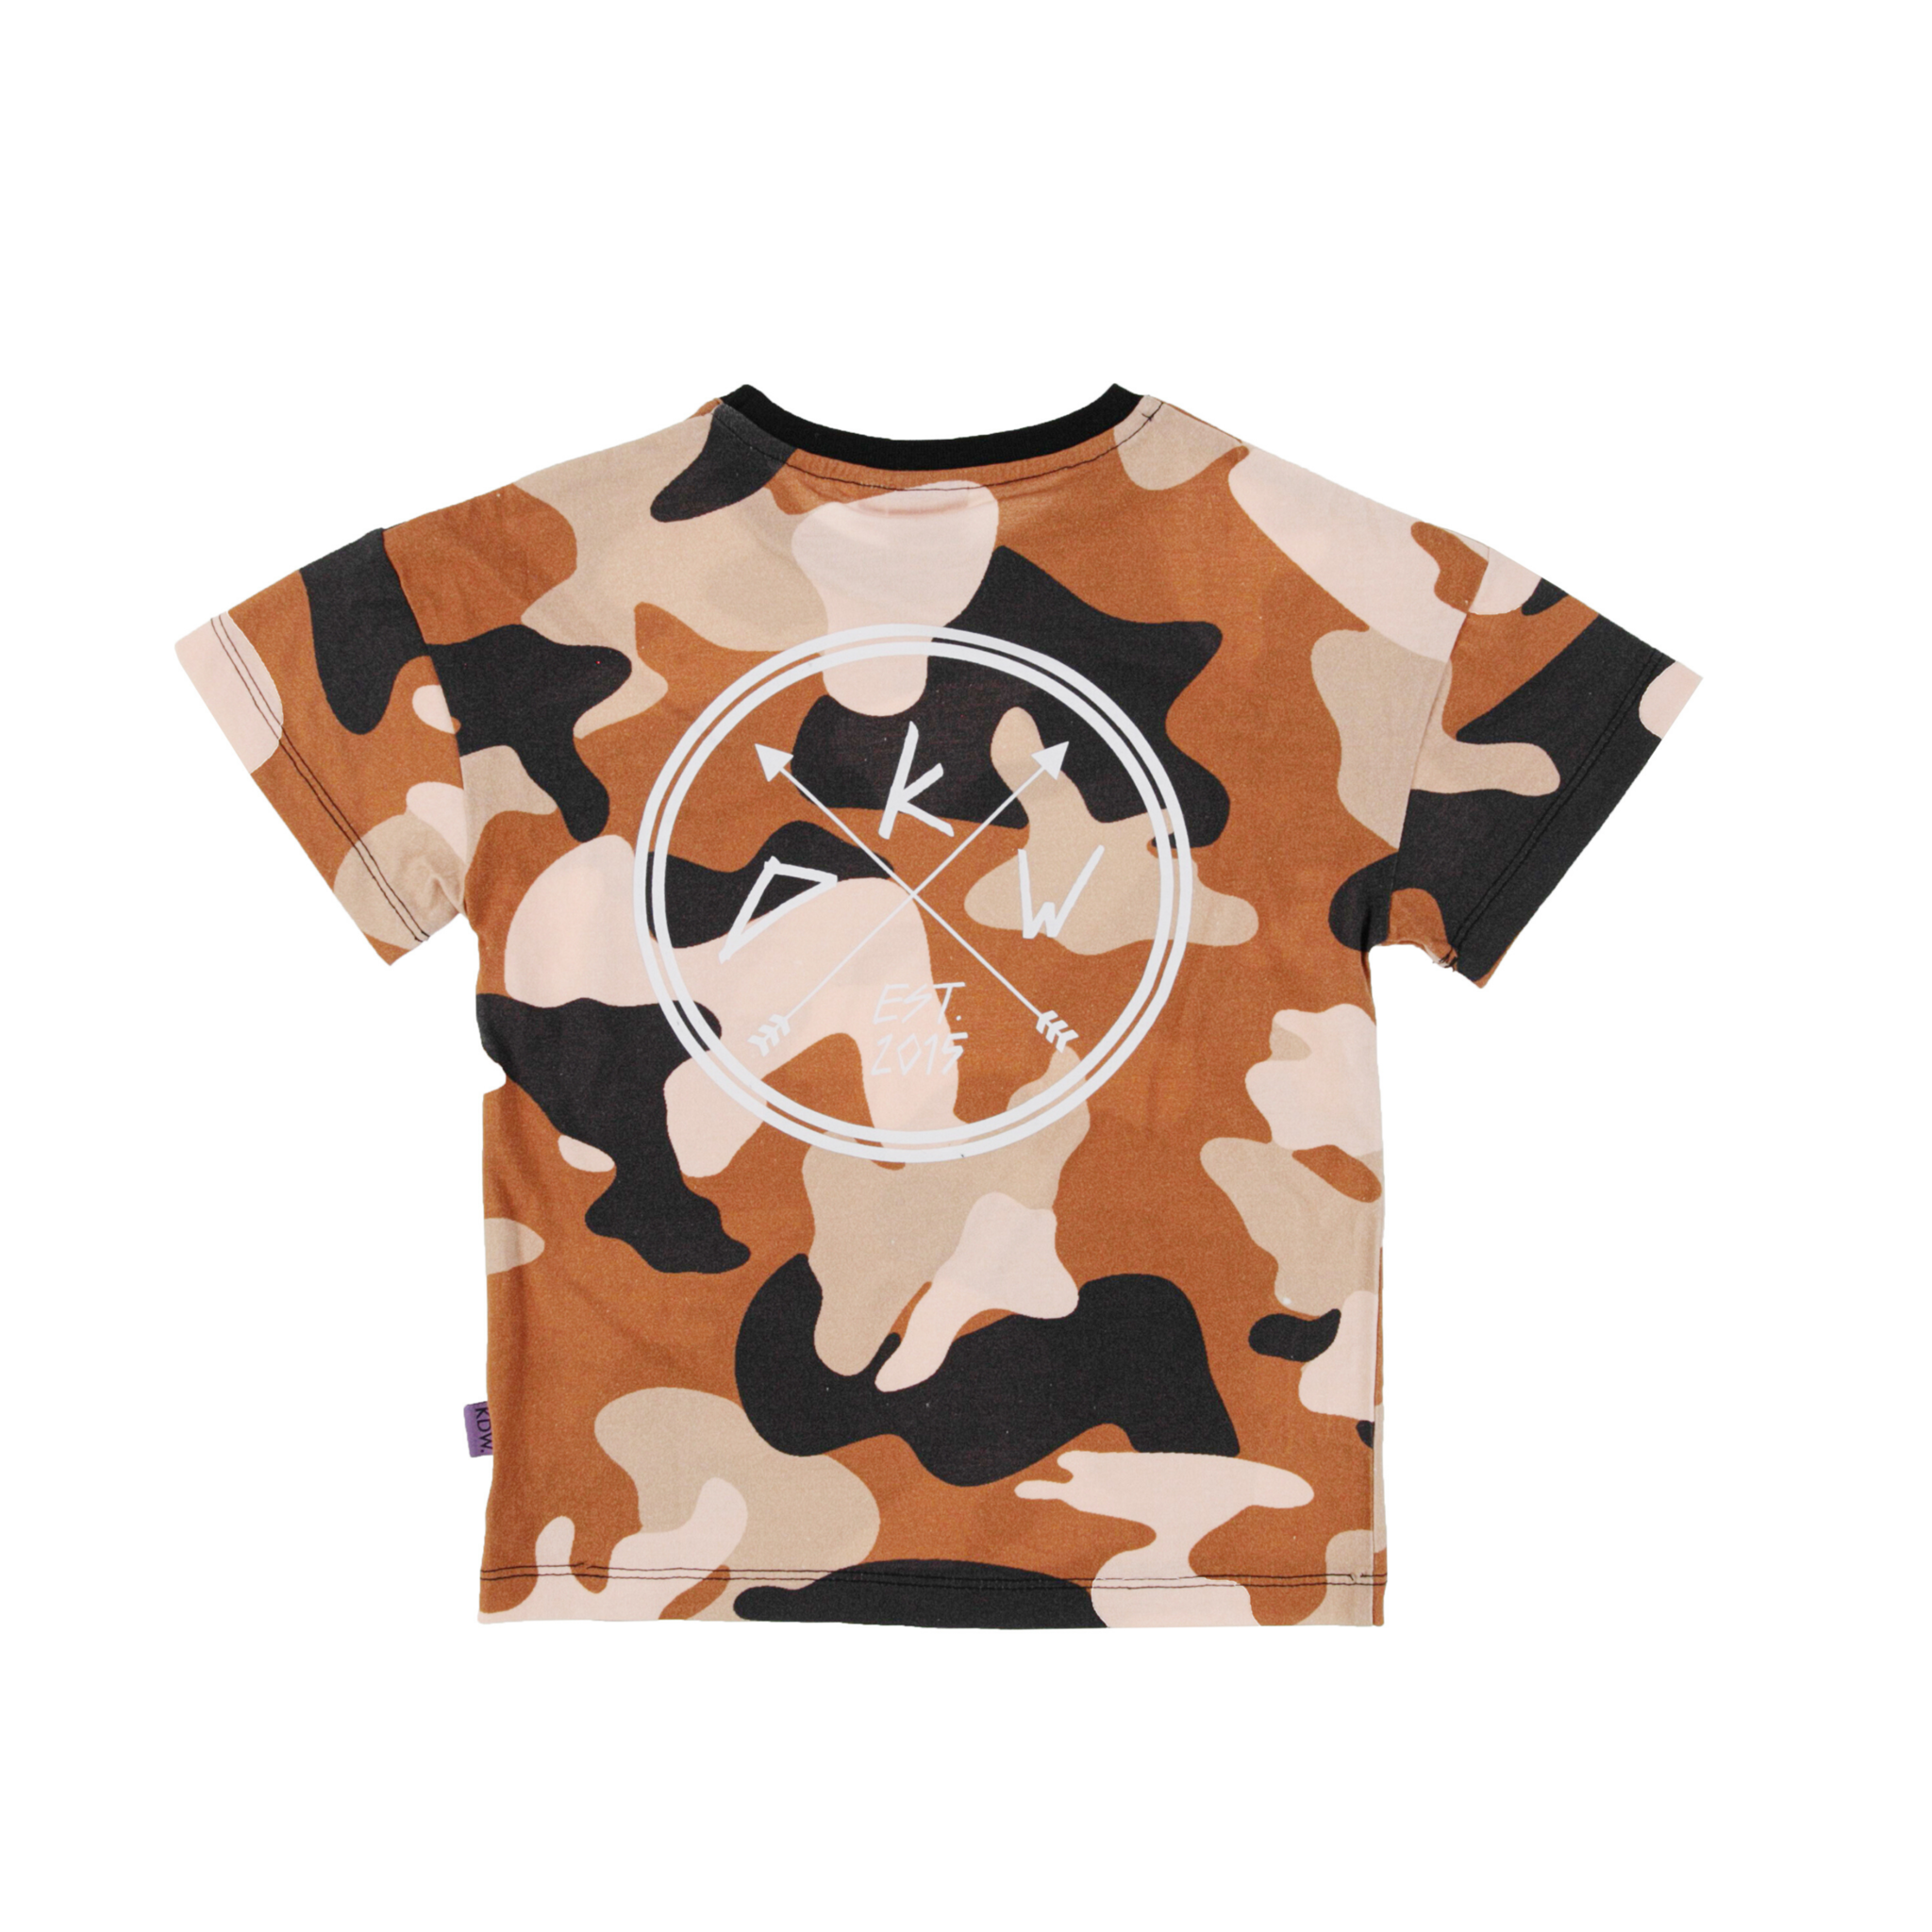 Kiddow OVERSIZED T-SHIRT IN CAMOUFLAGE PRINT | COOL SHIRT FOR CHILDREN | CHILDREN'S CLOTHING